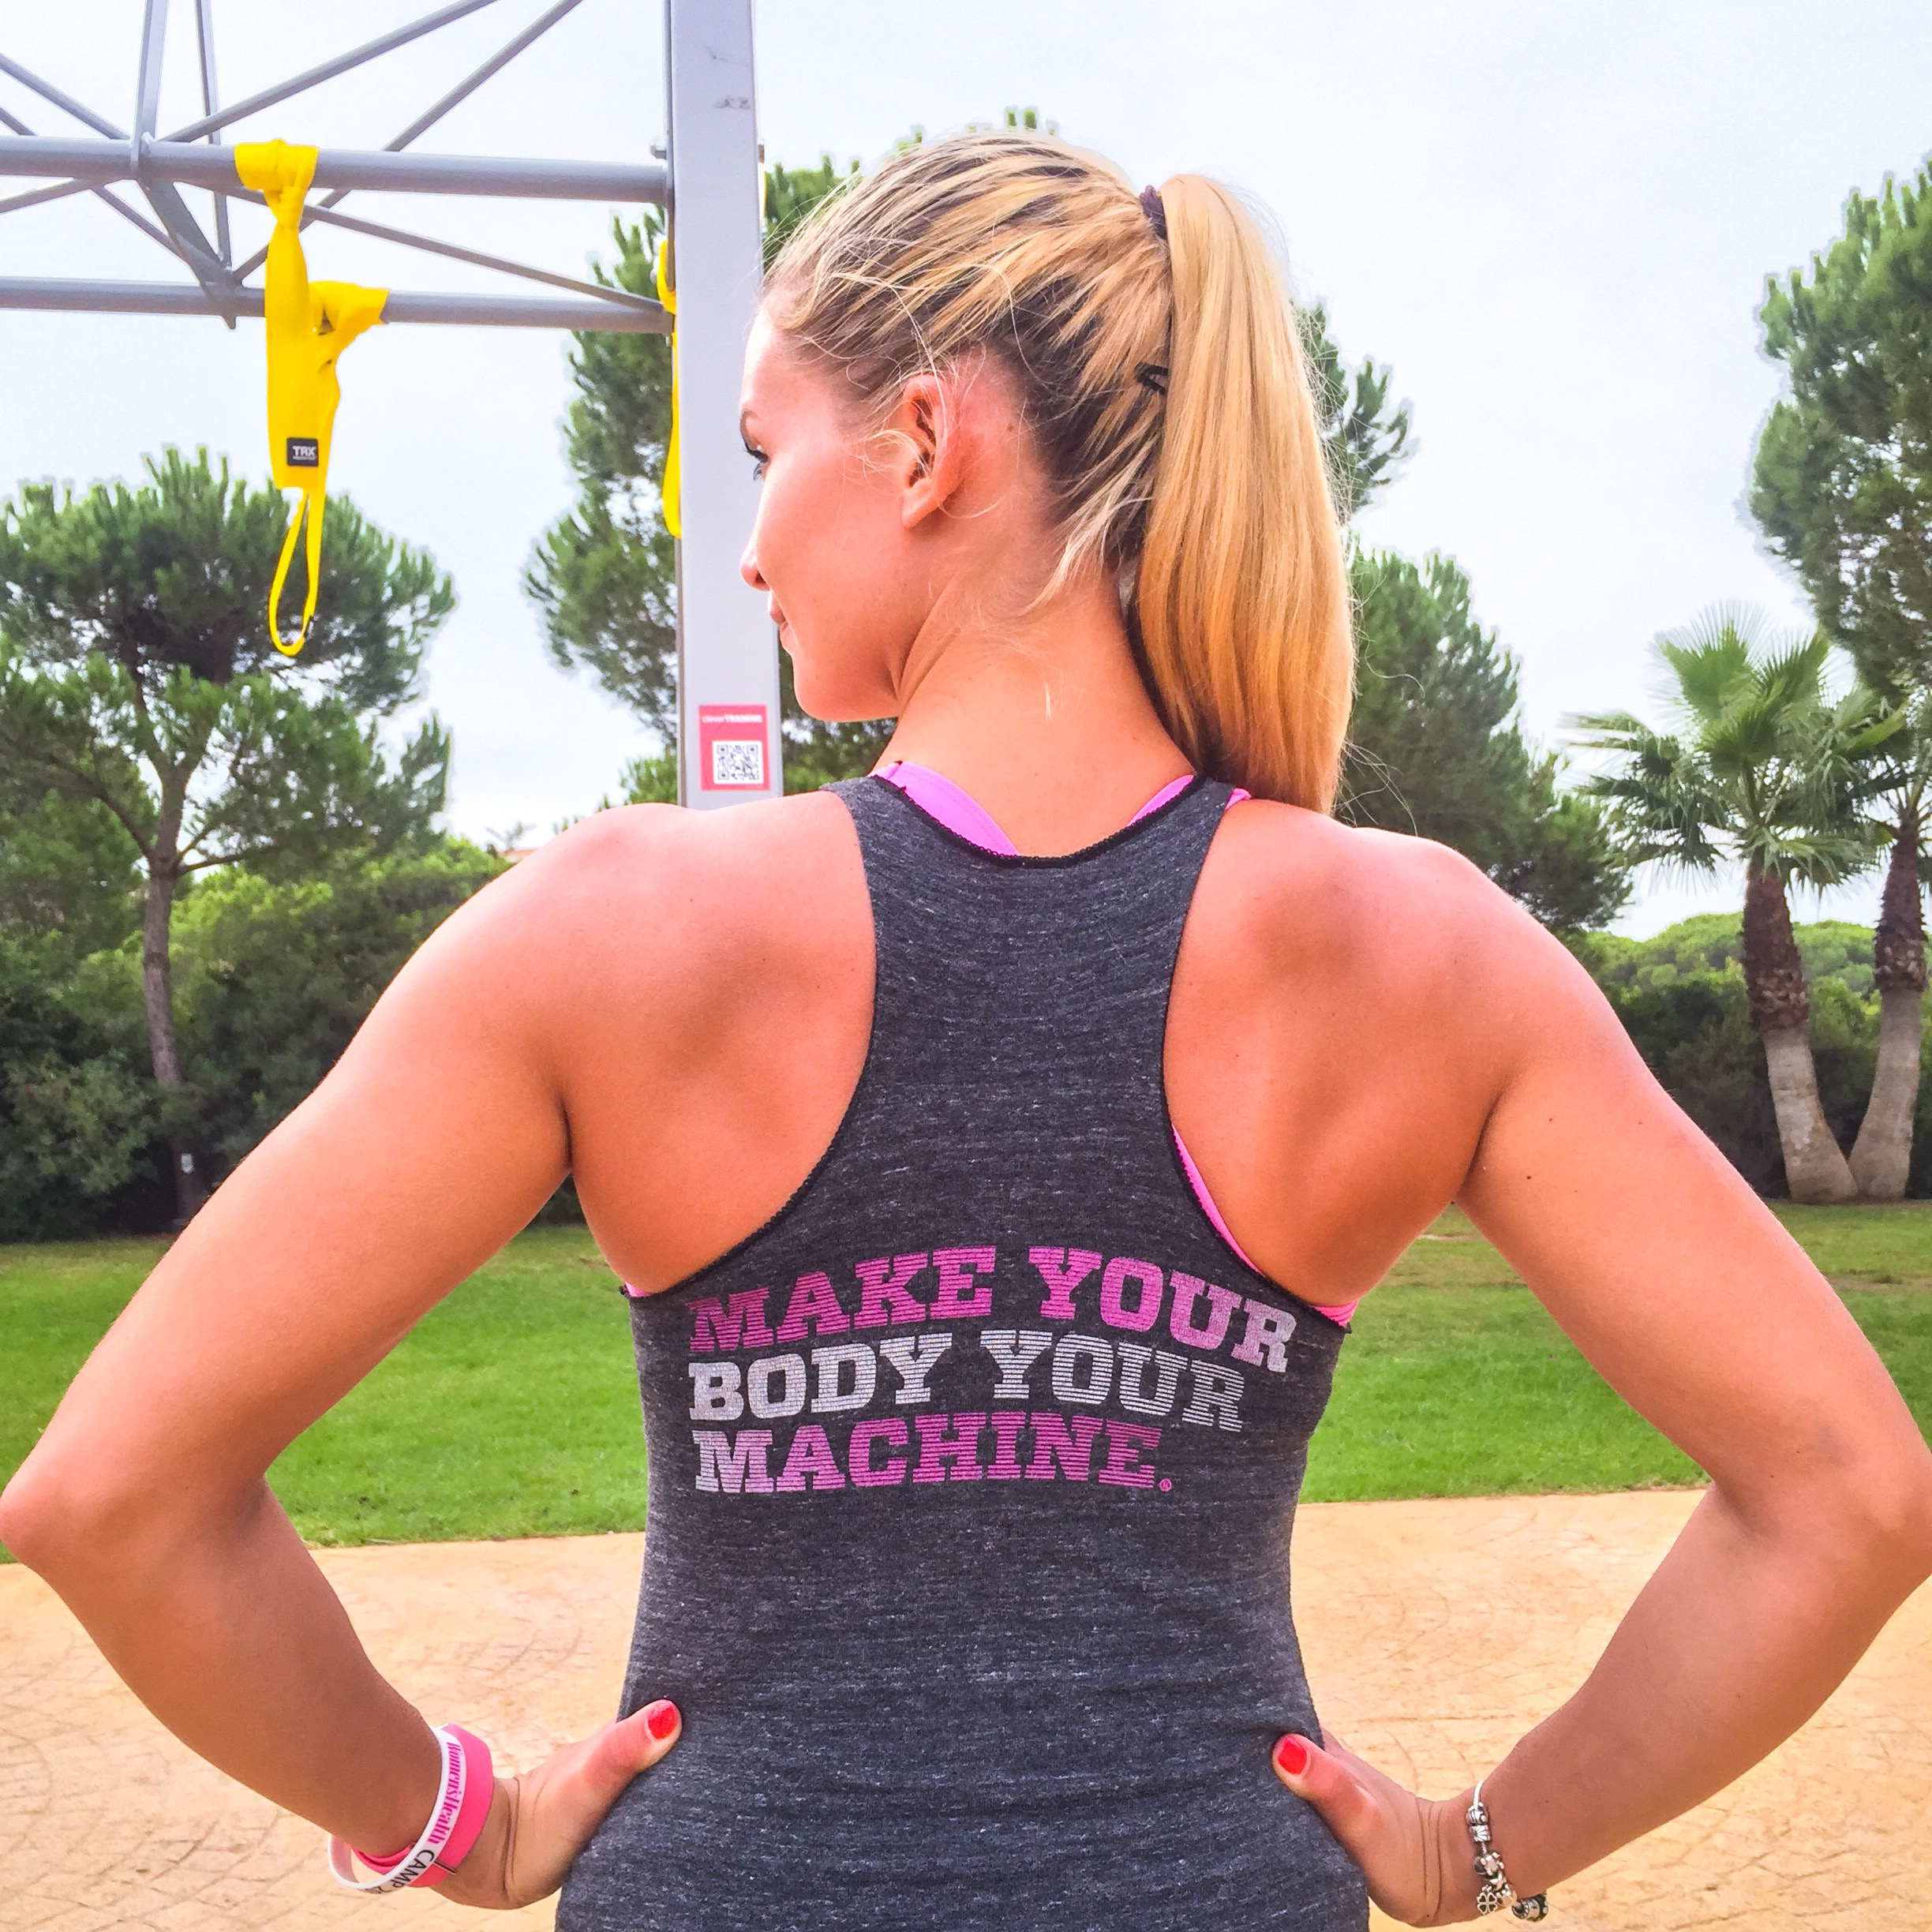 Make your body your machine